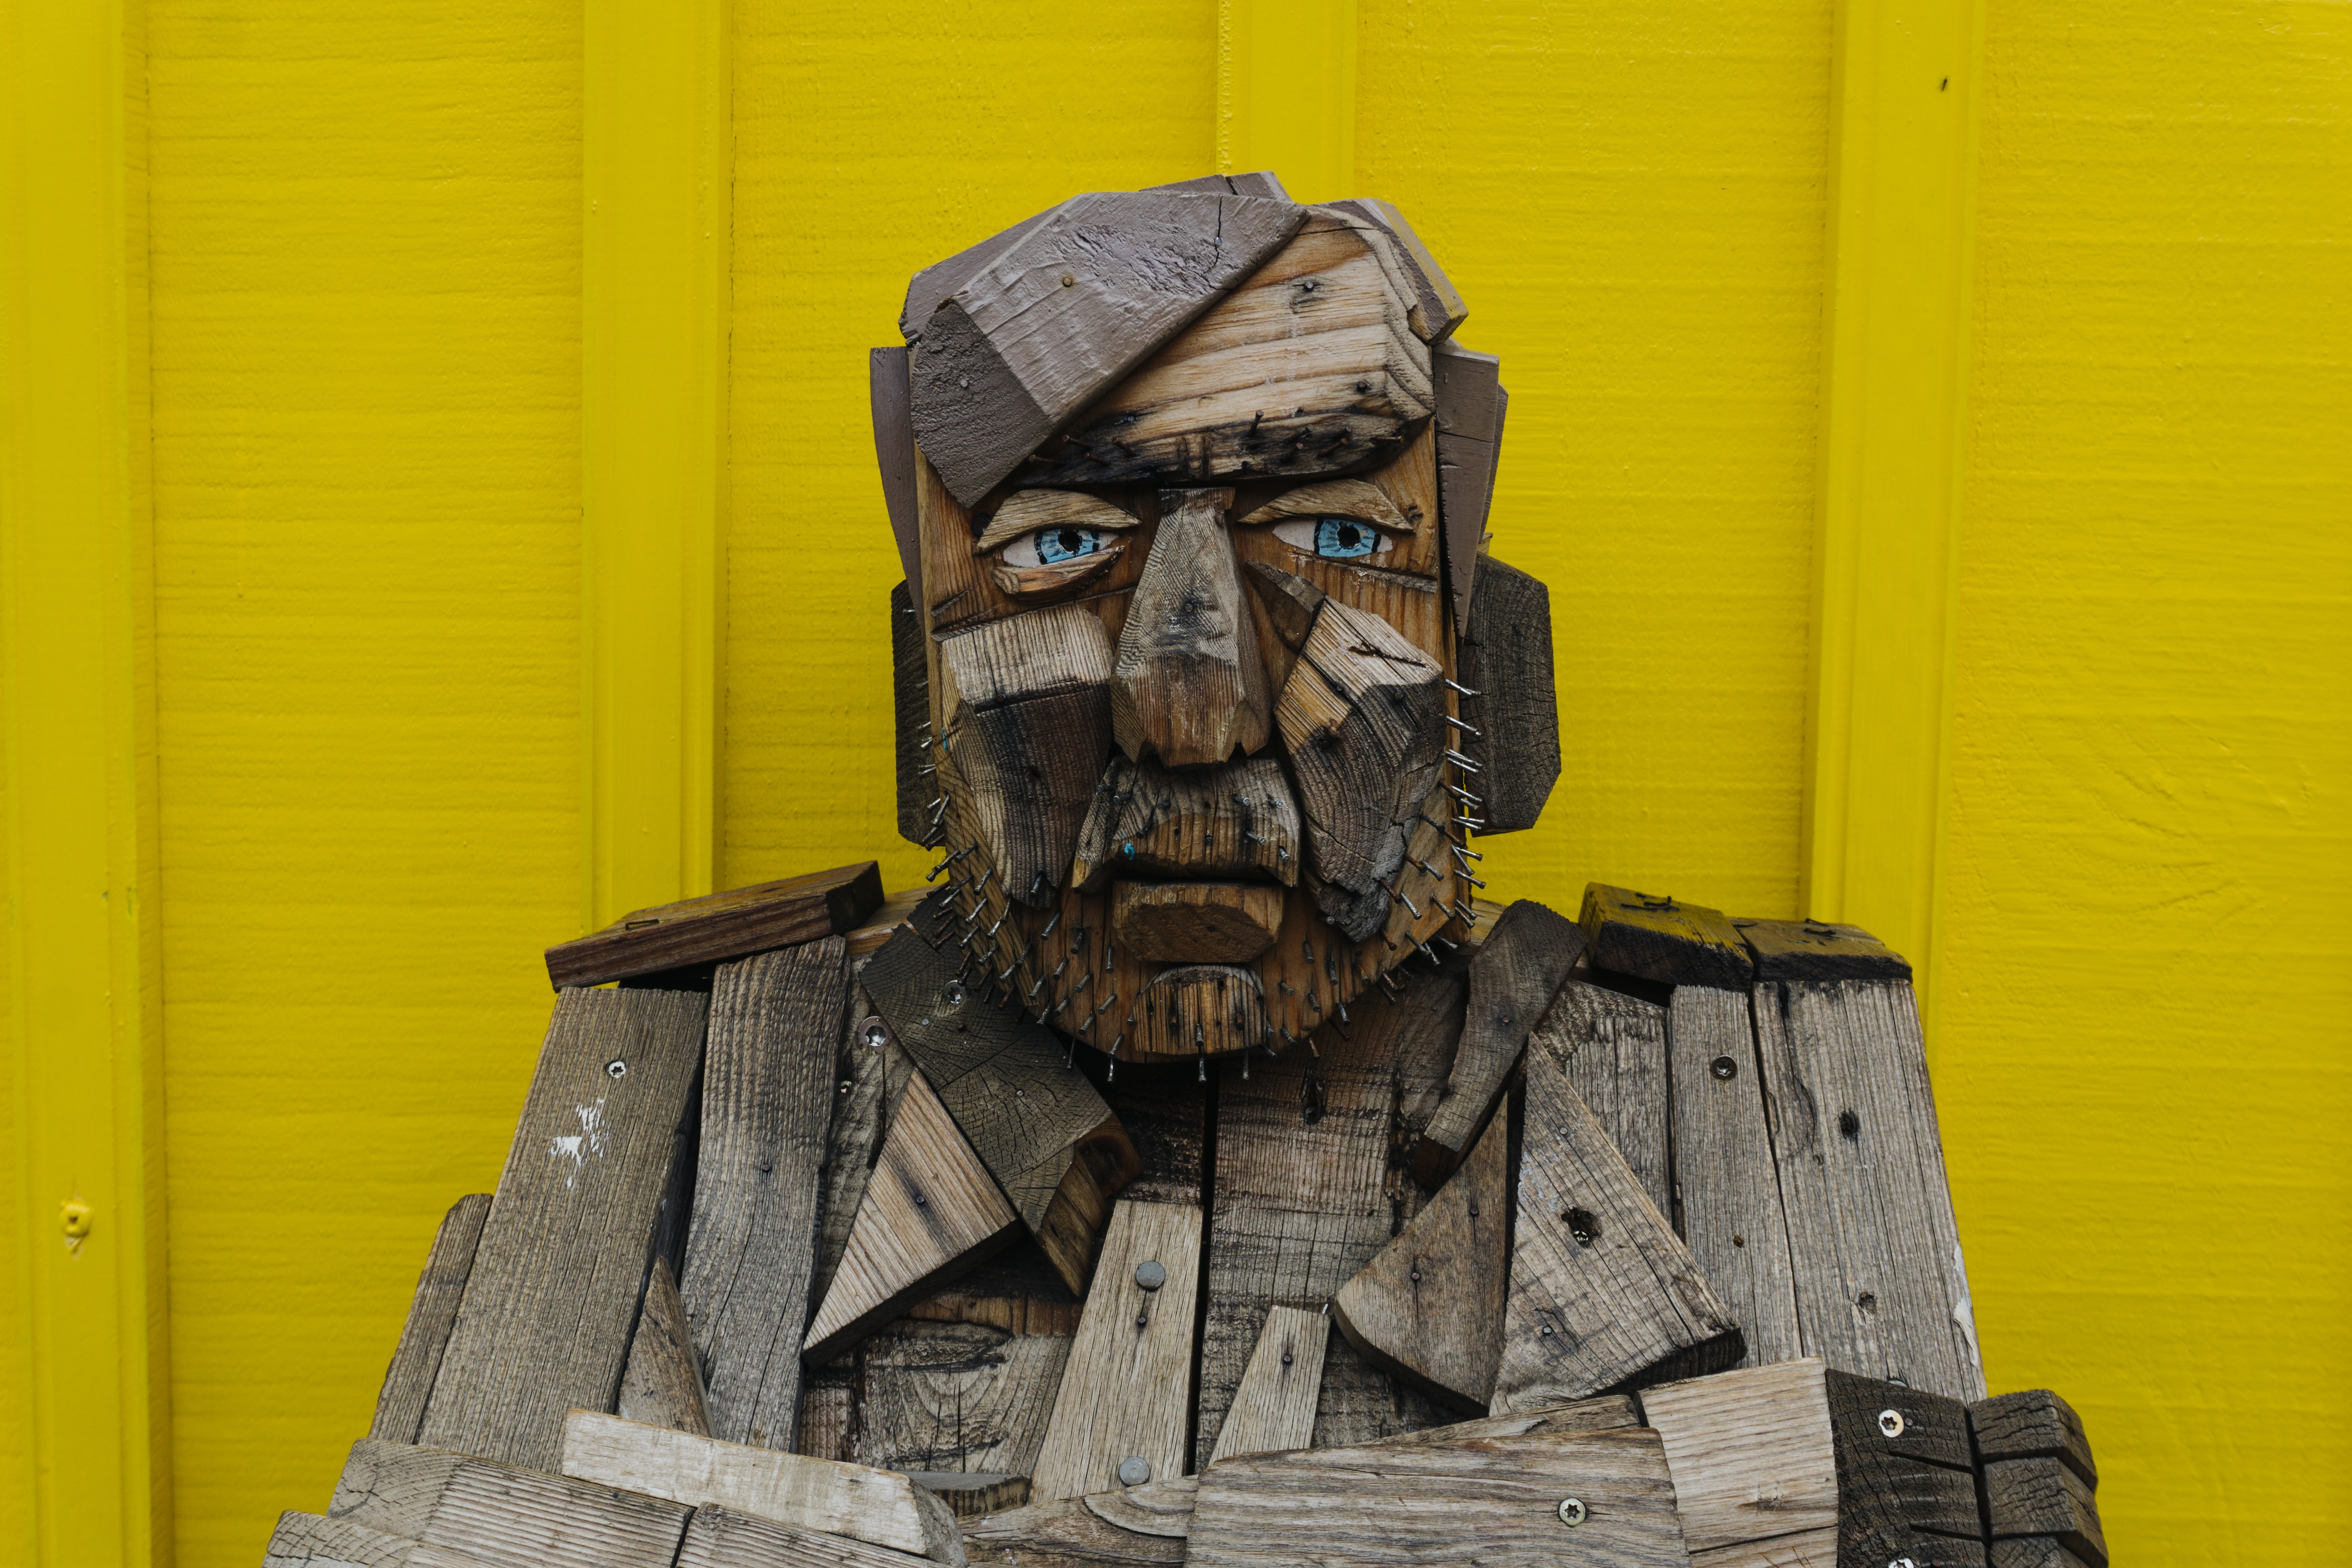 gray and brown human face decor